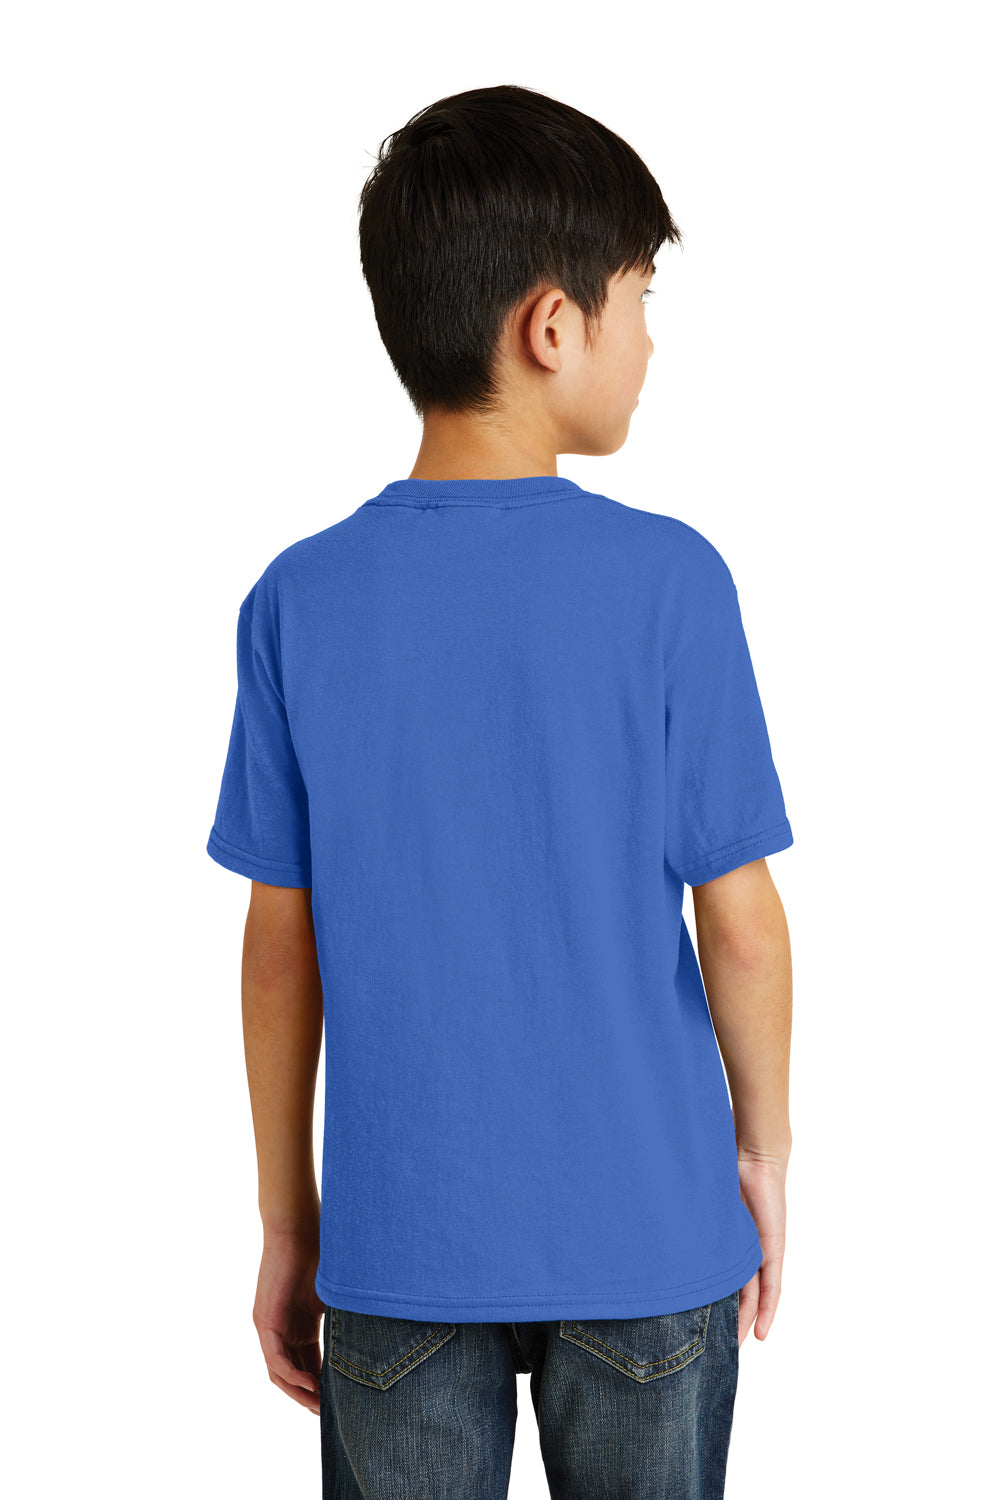 Port & Company PC55Y Youth Core Short Sleeve Crewneck T-Shirt Royal Blue Back